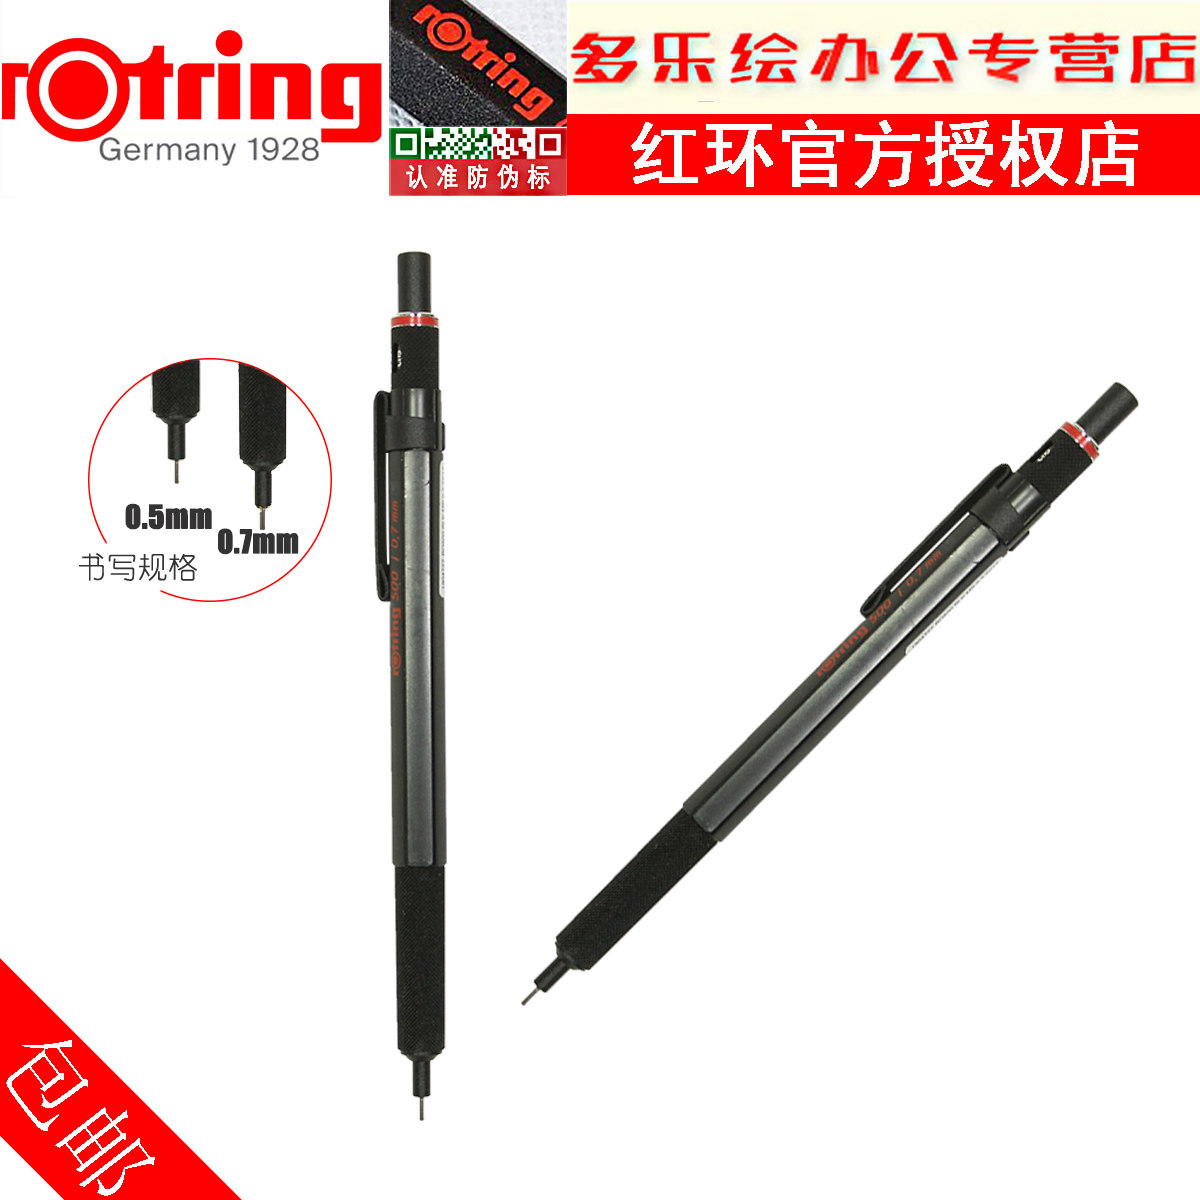 German red ring automatic pencil caricature painted rotring500 design professional graphics drawing pencil